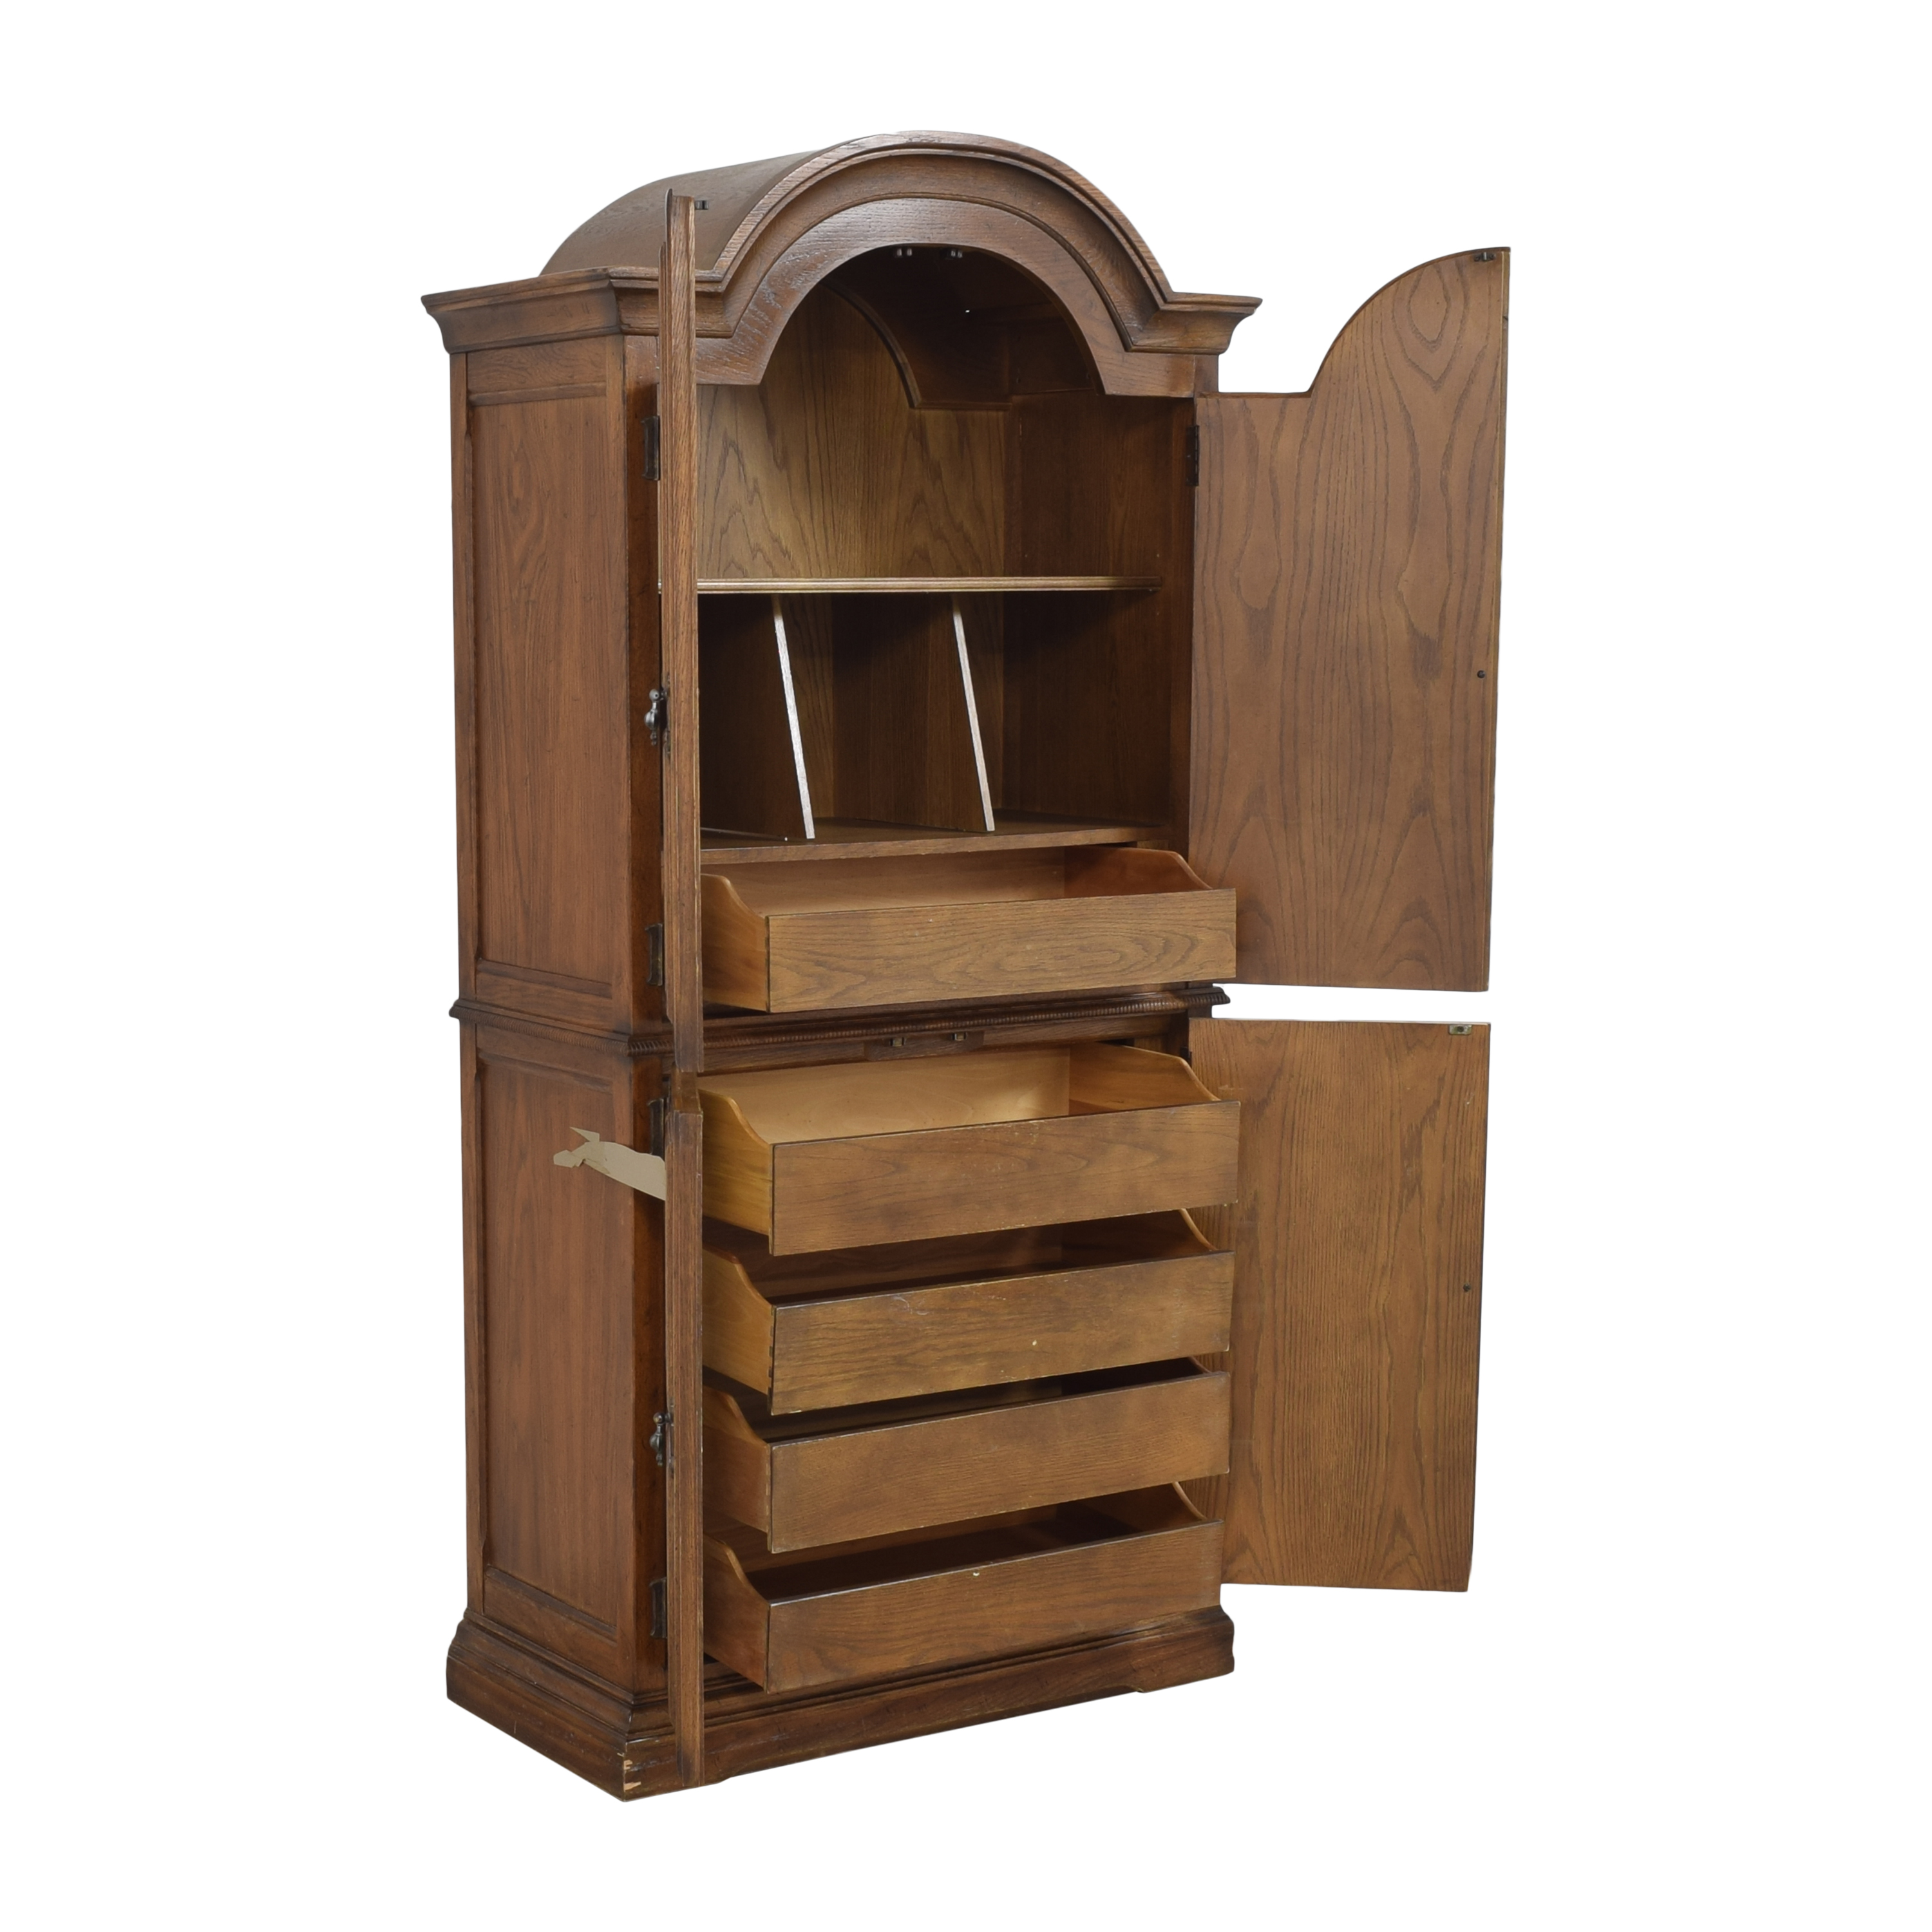 shop Drexel Drexel Country French Armoire online